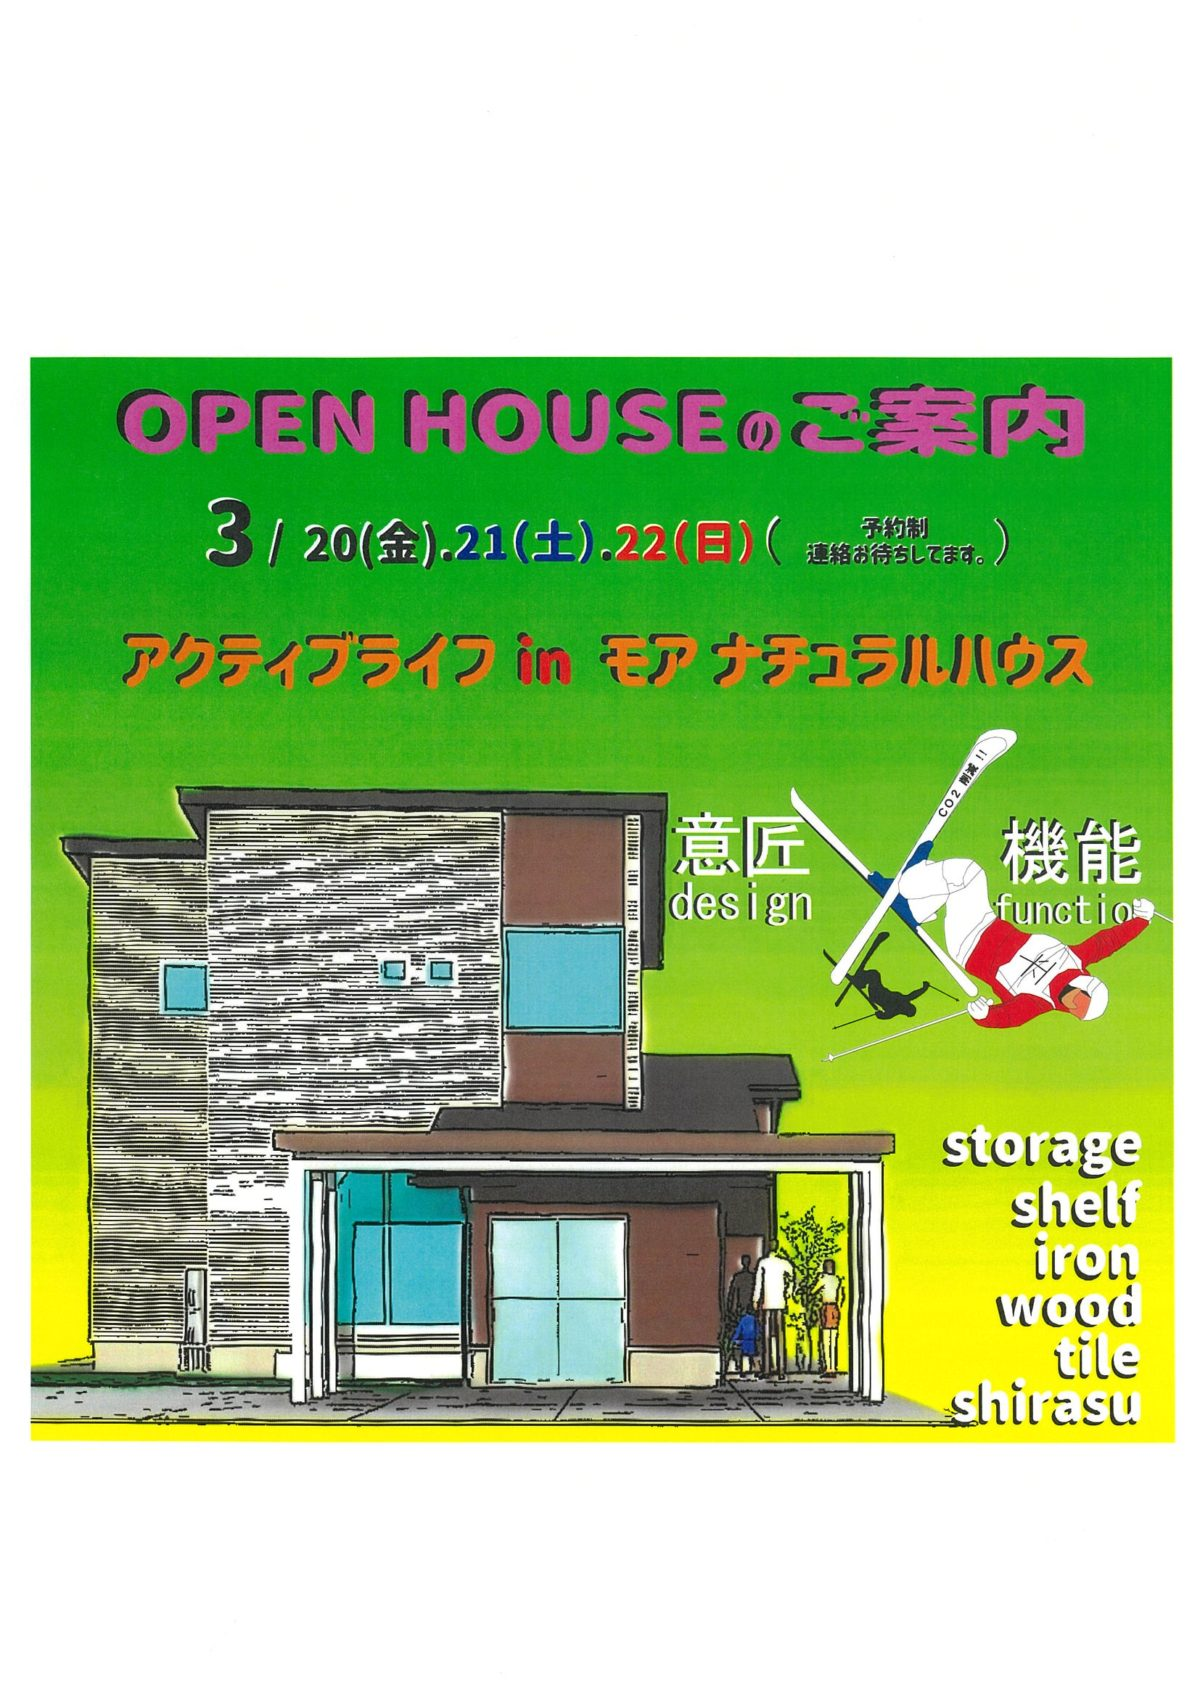 OPEN HOUSEのご案内